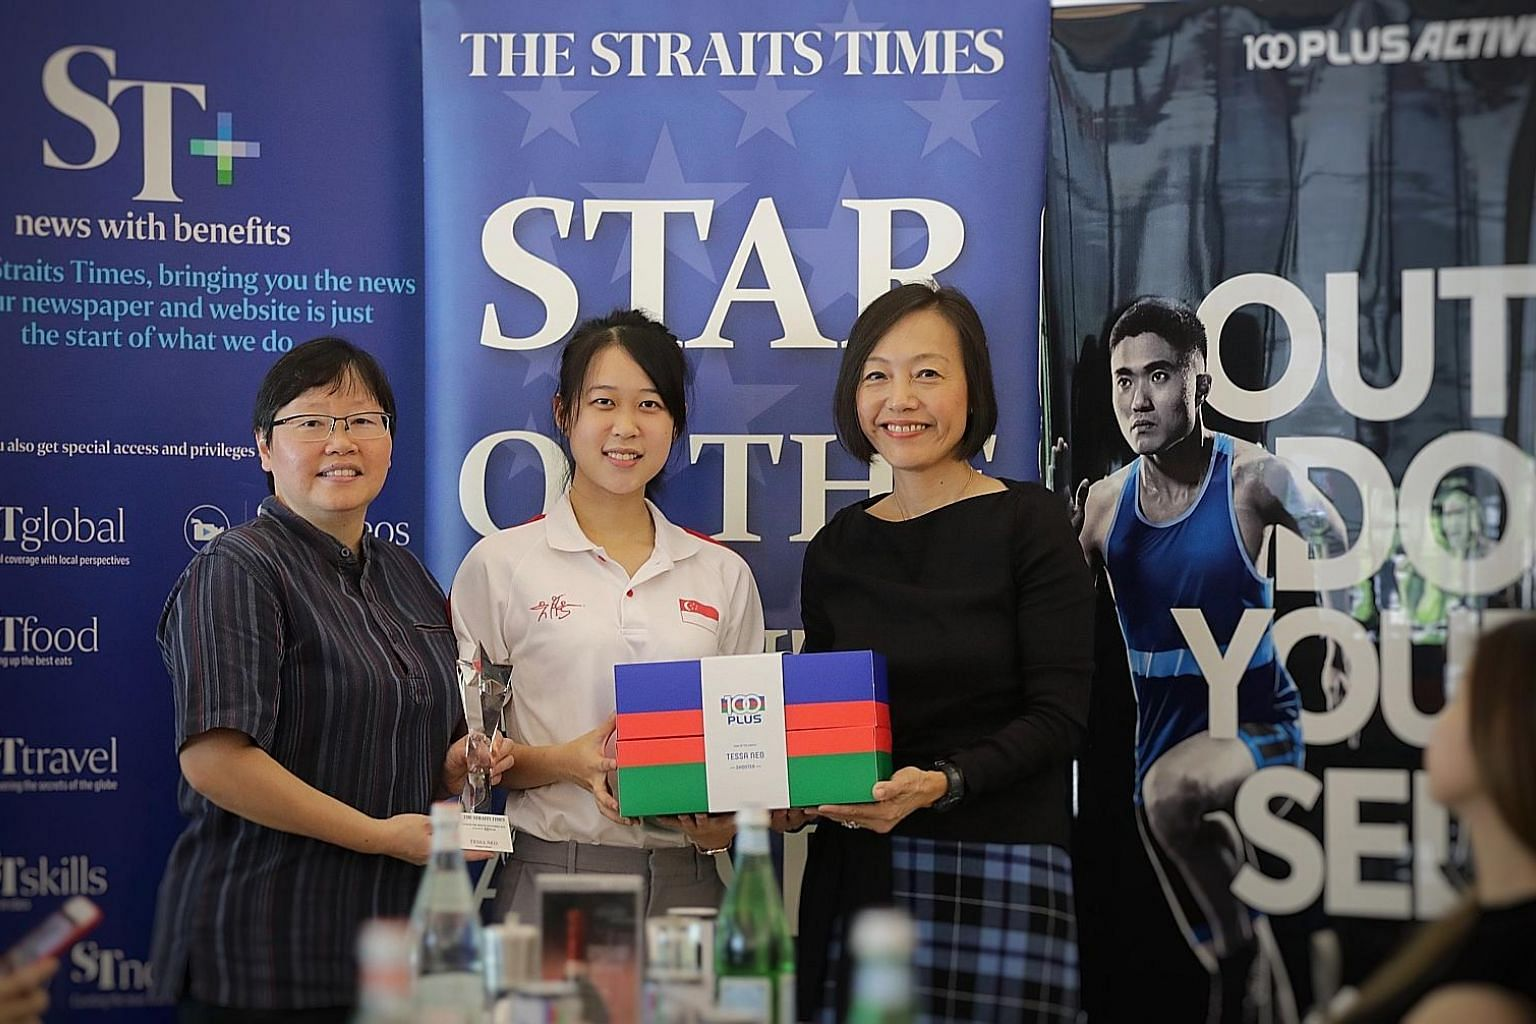 ST sports editor Lee Yulin (left) and F&N Foods managing director Jennifer See presenting Tessa Neo with the ST Star of the Month award yesterday. The shooter was the first Singaporean to win a medal in the women's 10m air rifle at the Asian Shooting